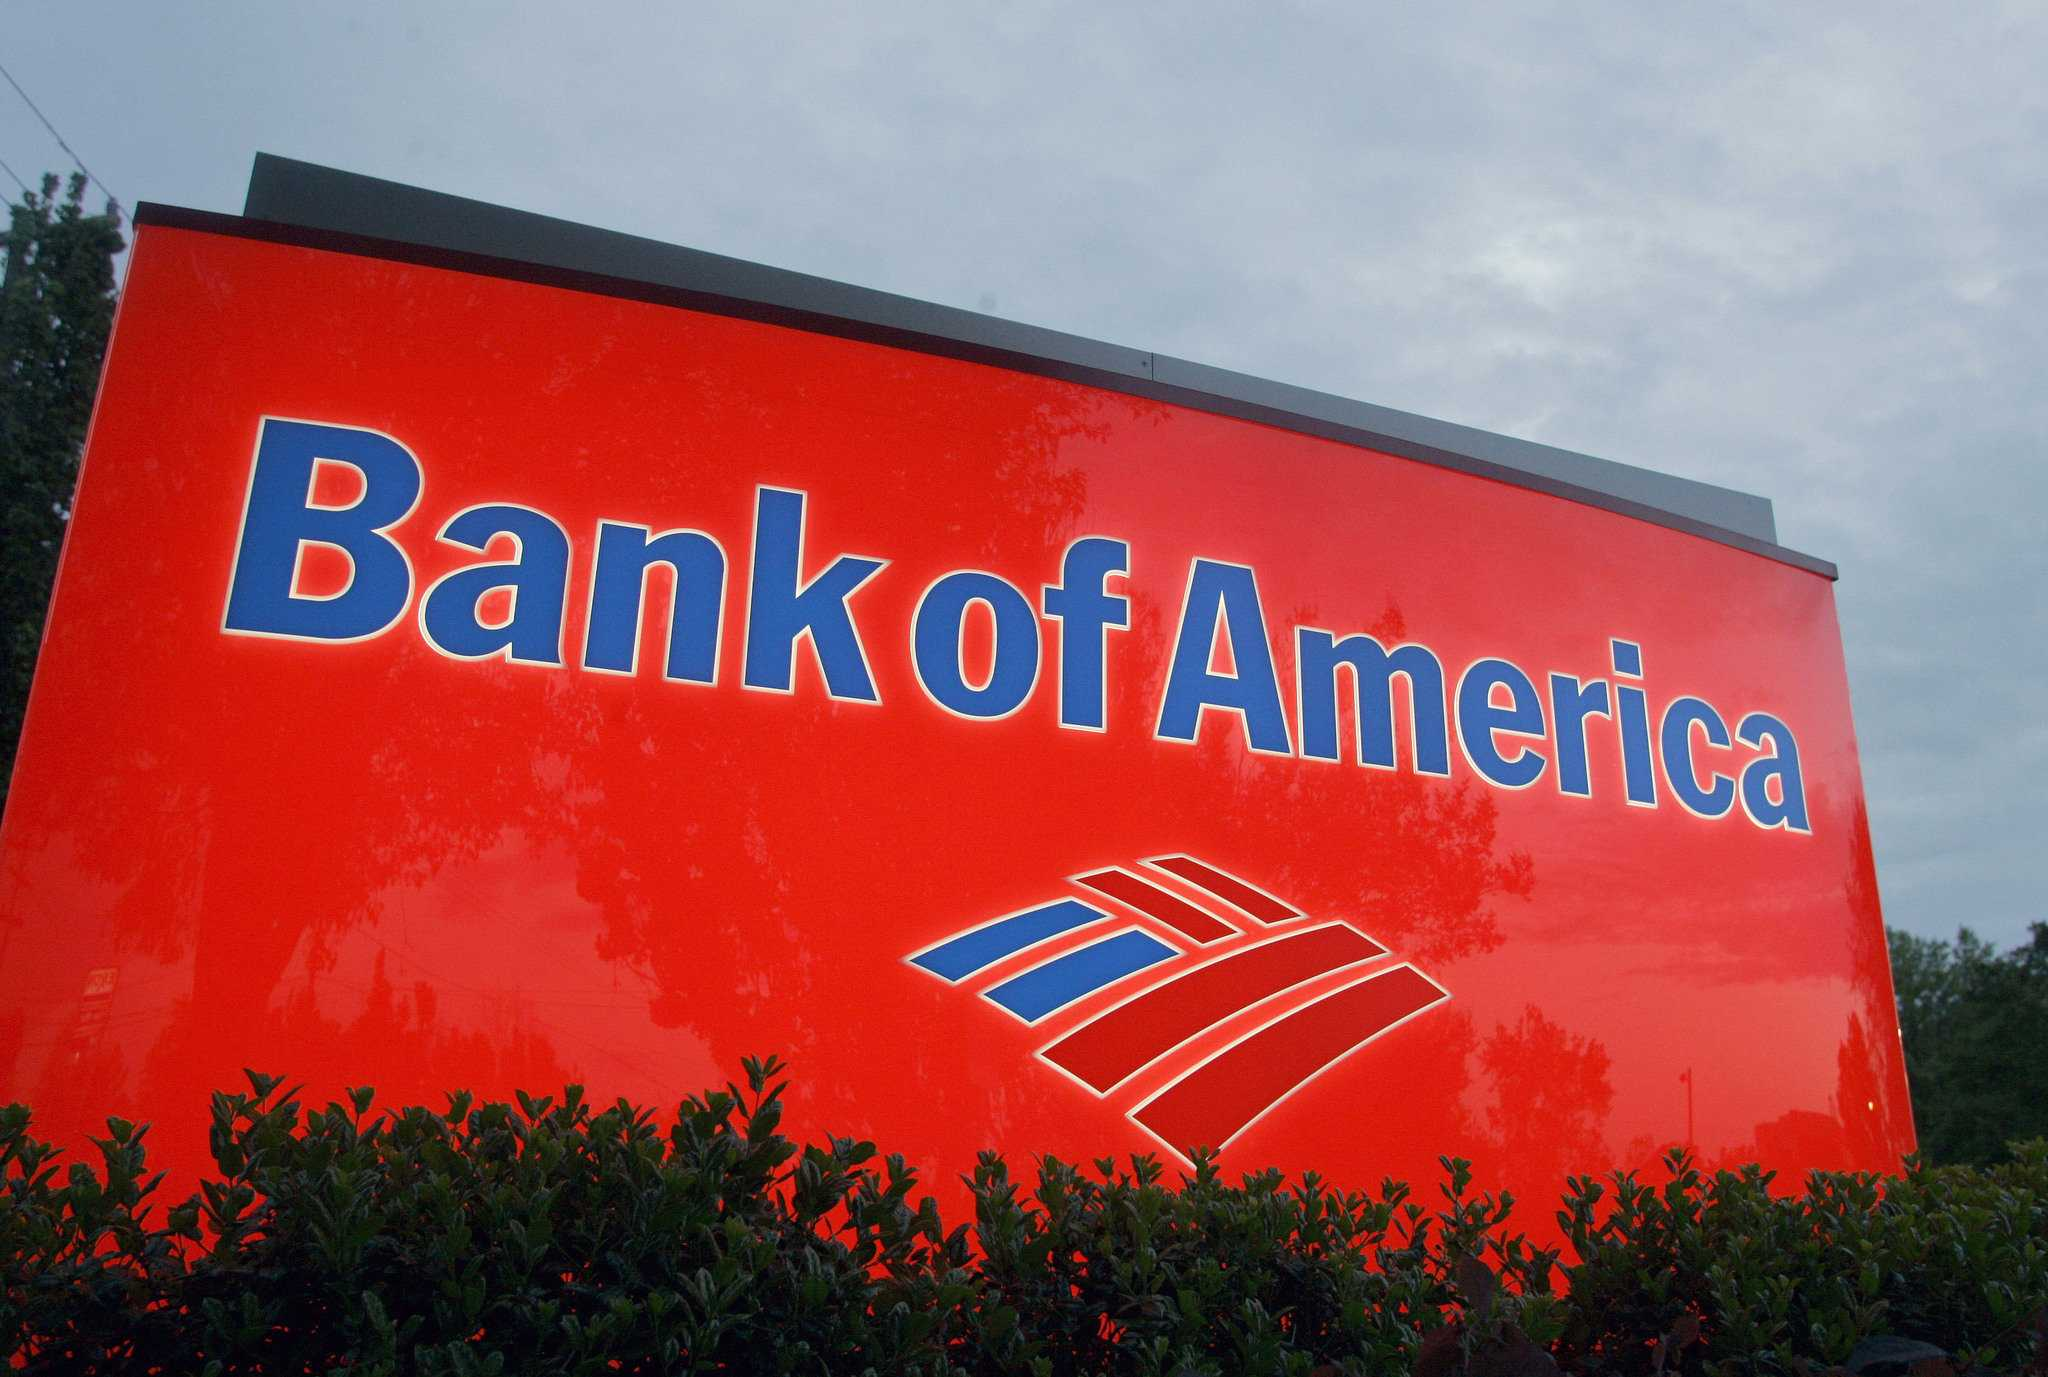 bank of america hours, bank of america hours today